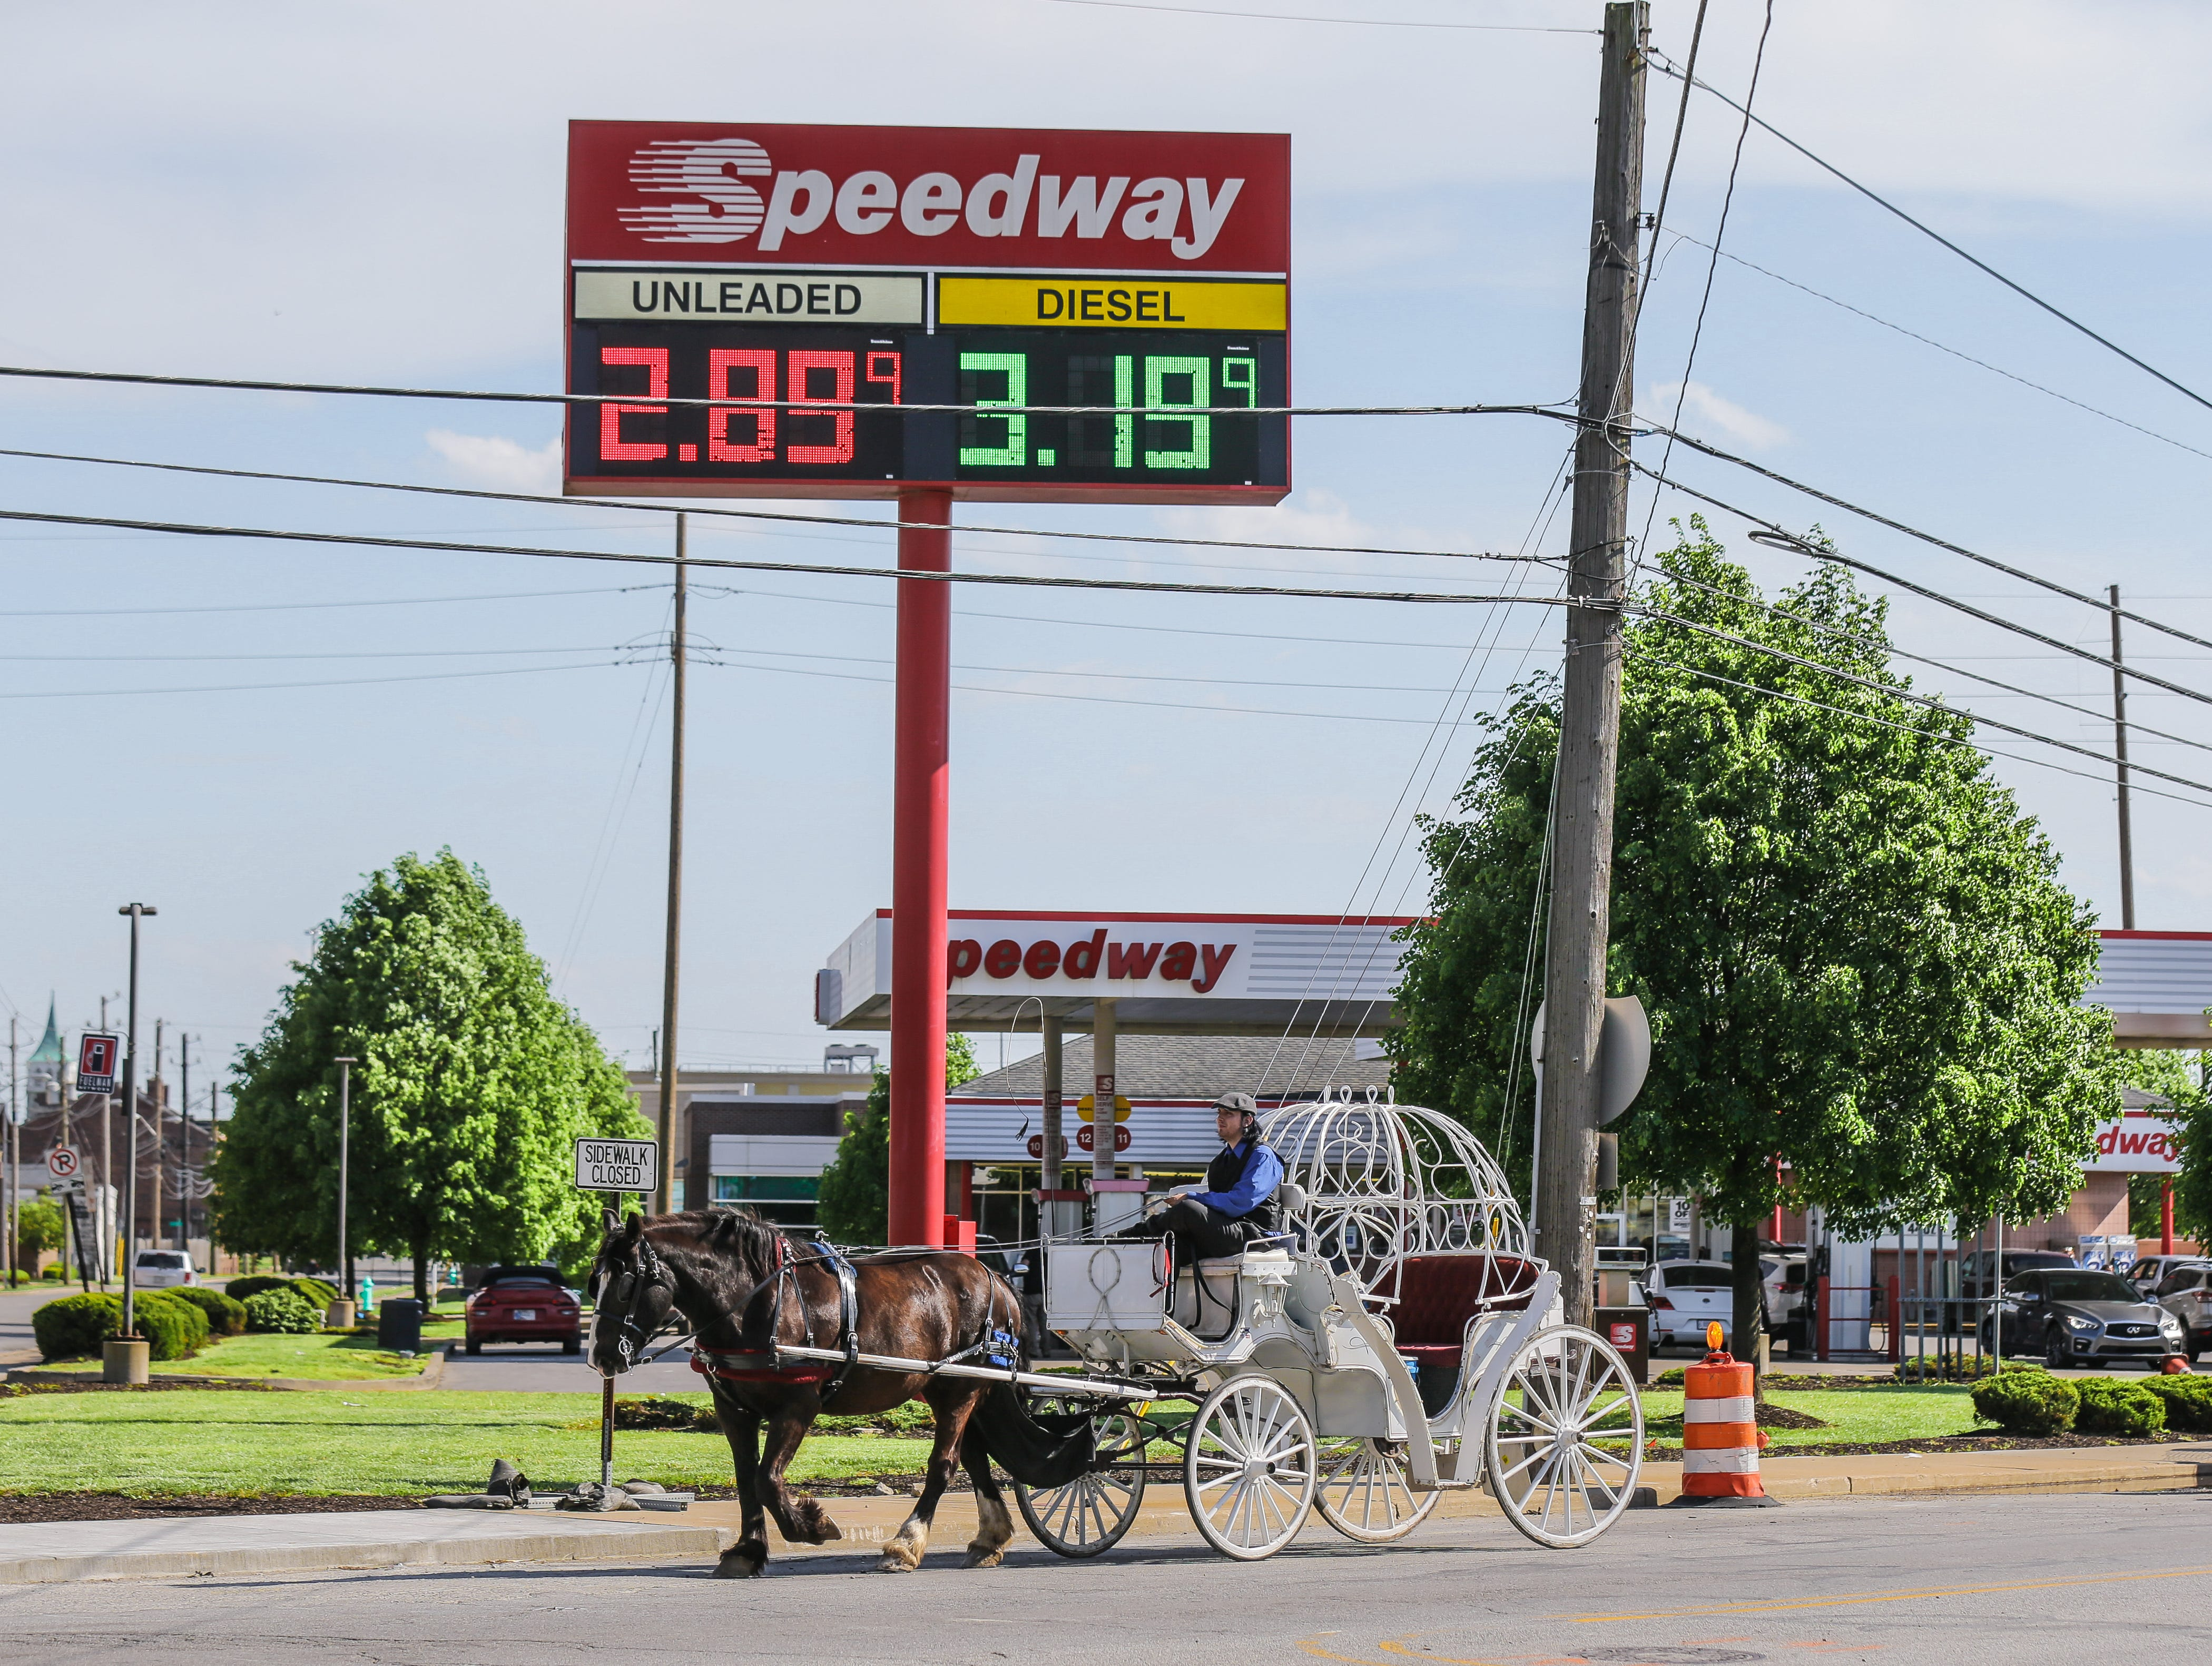 Jake Steinhardt from Blue Ribbon Carriages drives his carriage past the Speedway Gas Station located at 401 S. Kentucky Ave. in Indianapolis on Thursday, May 10, 2018. Gas prices are on the rise in Indiana.